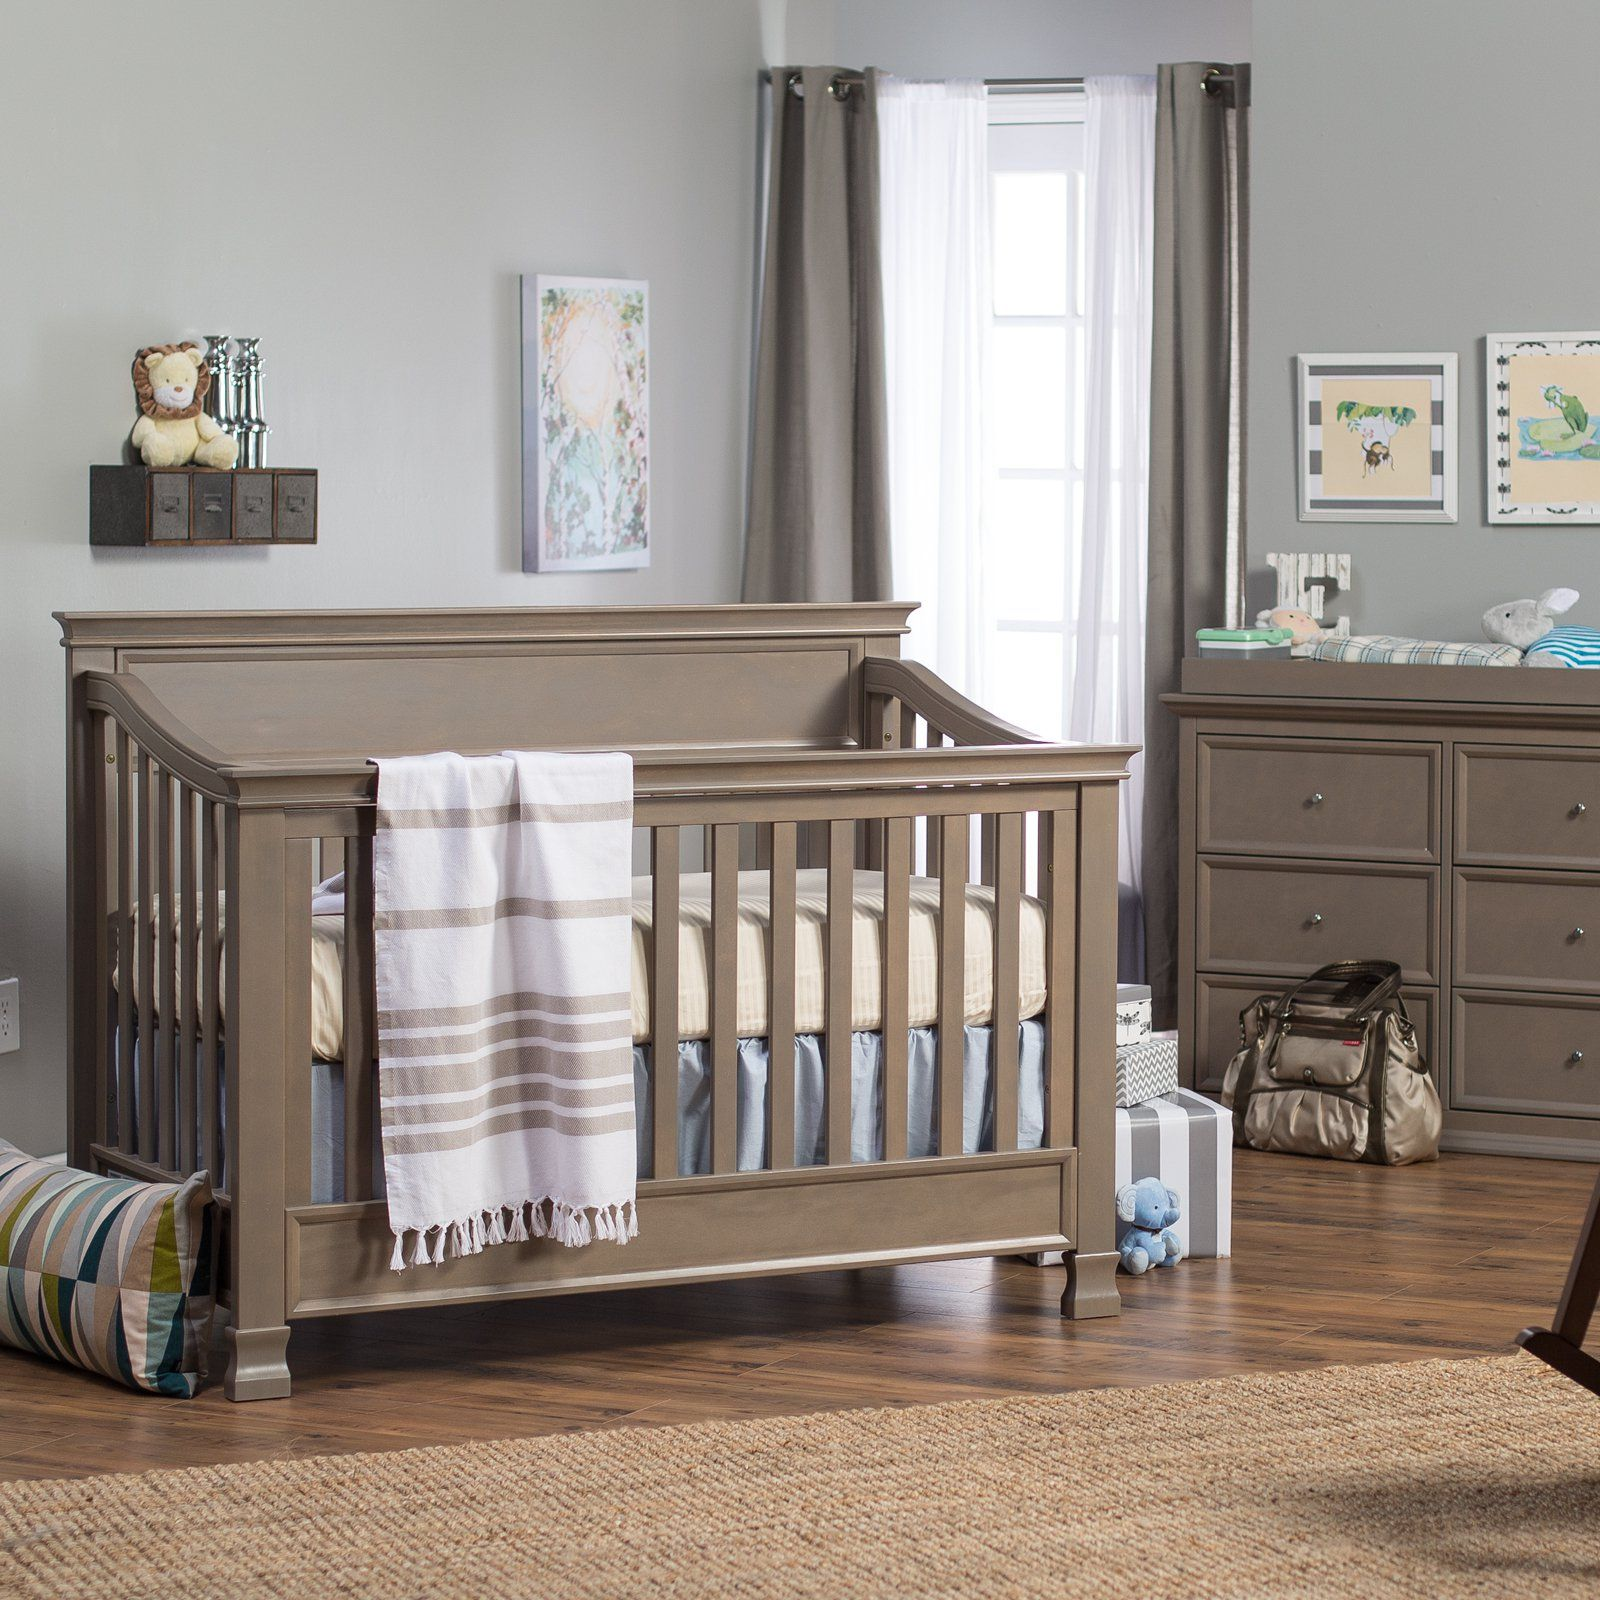 Crib Toddler Bed Daybed Full Size Bed All In One Solid Wood